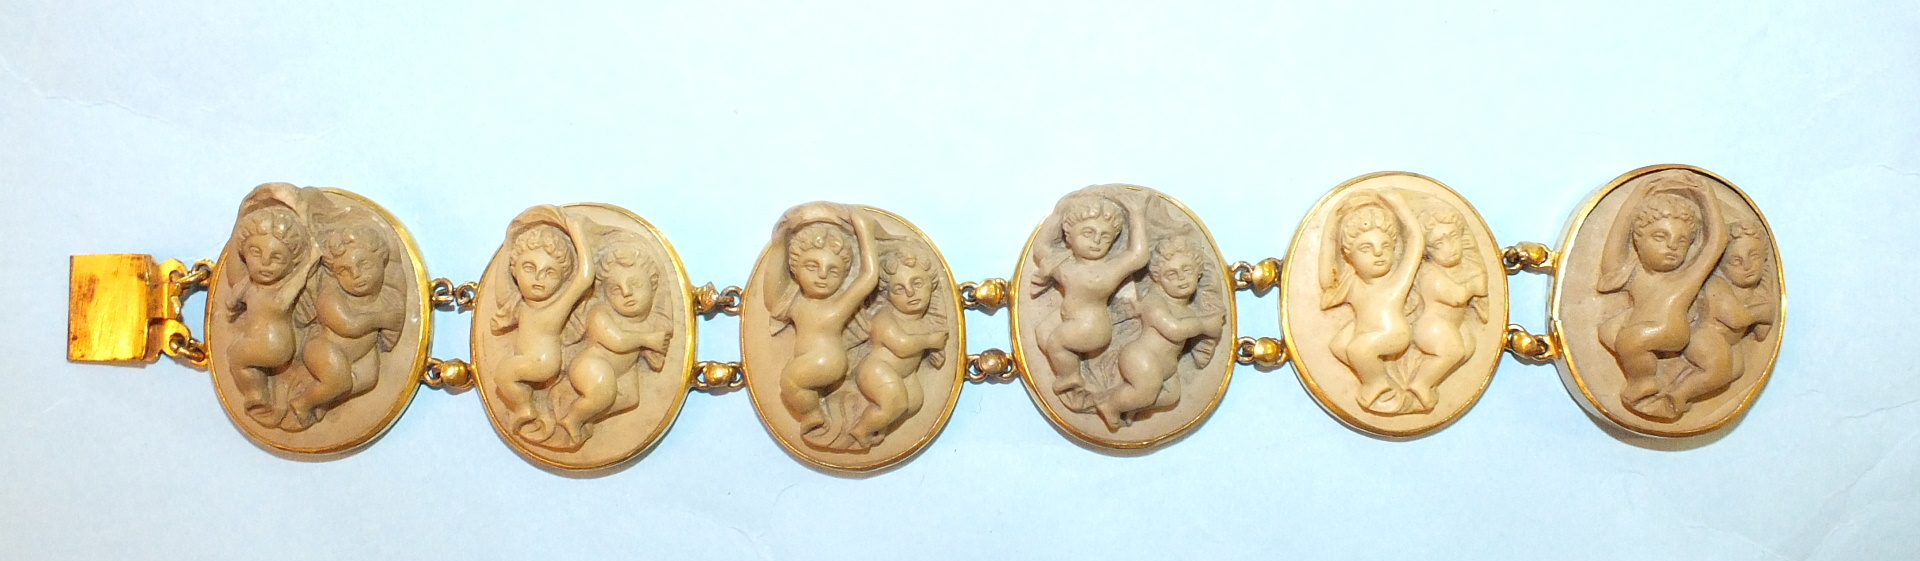 Lot 205 - A 19th century lava bracelet of six plaques, each carved in high relief with two infants, in gilt